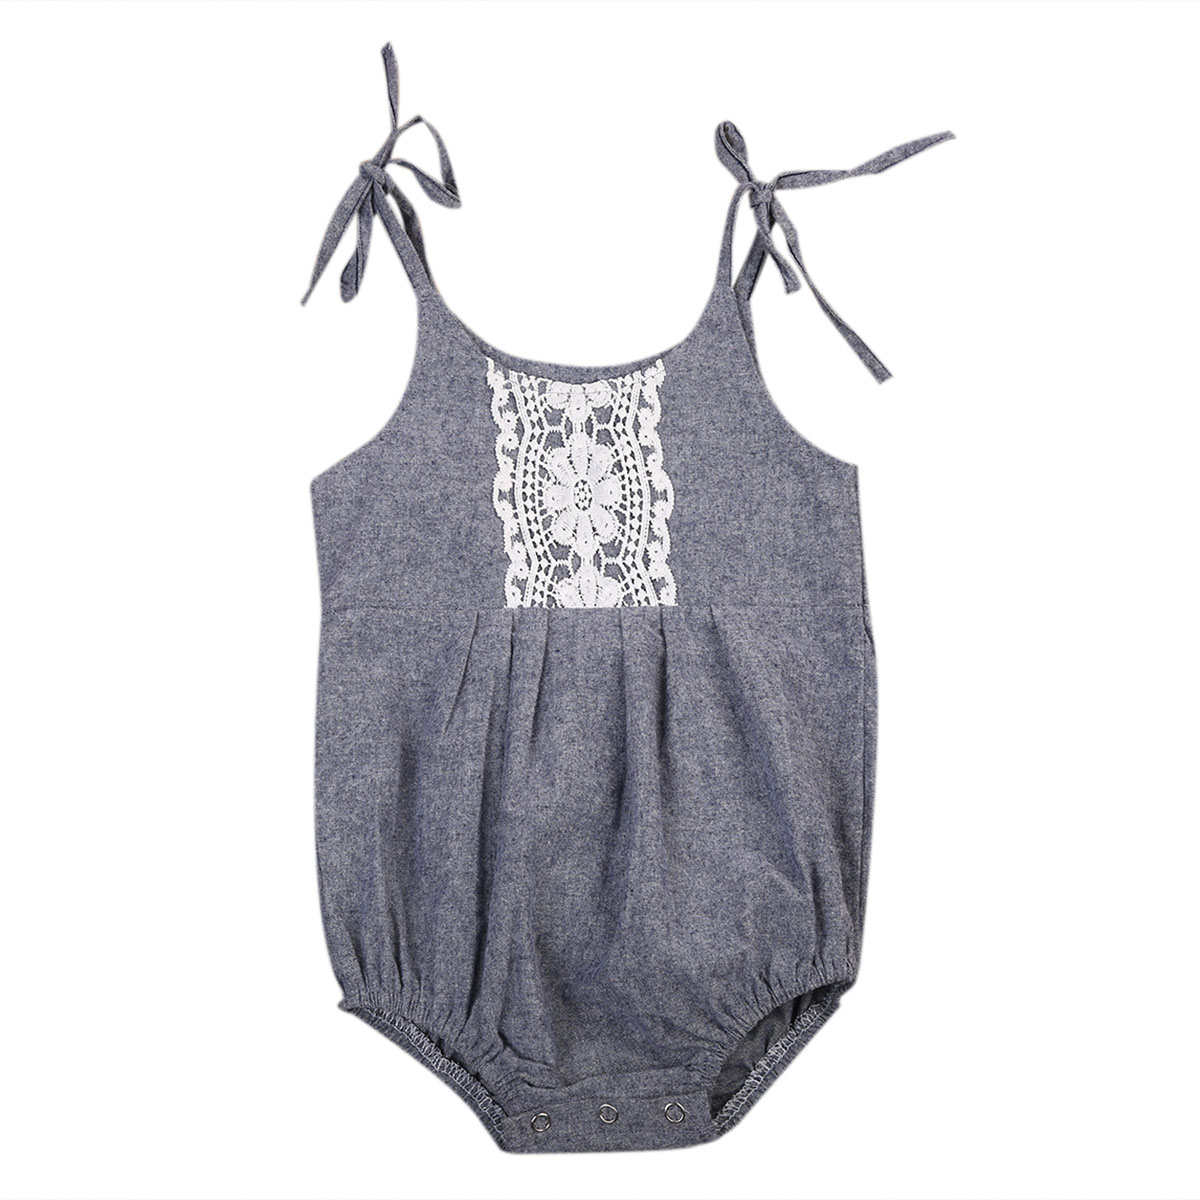 Newborn Baby Girl Lace Floral Romper Jumpsuit Outfits Sunsuit baby girl clothes bodysuit Clothes